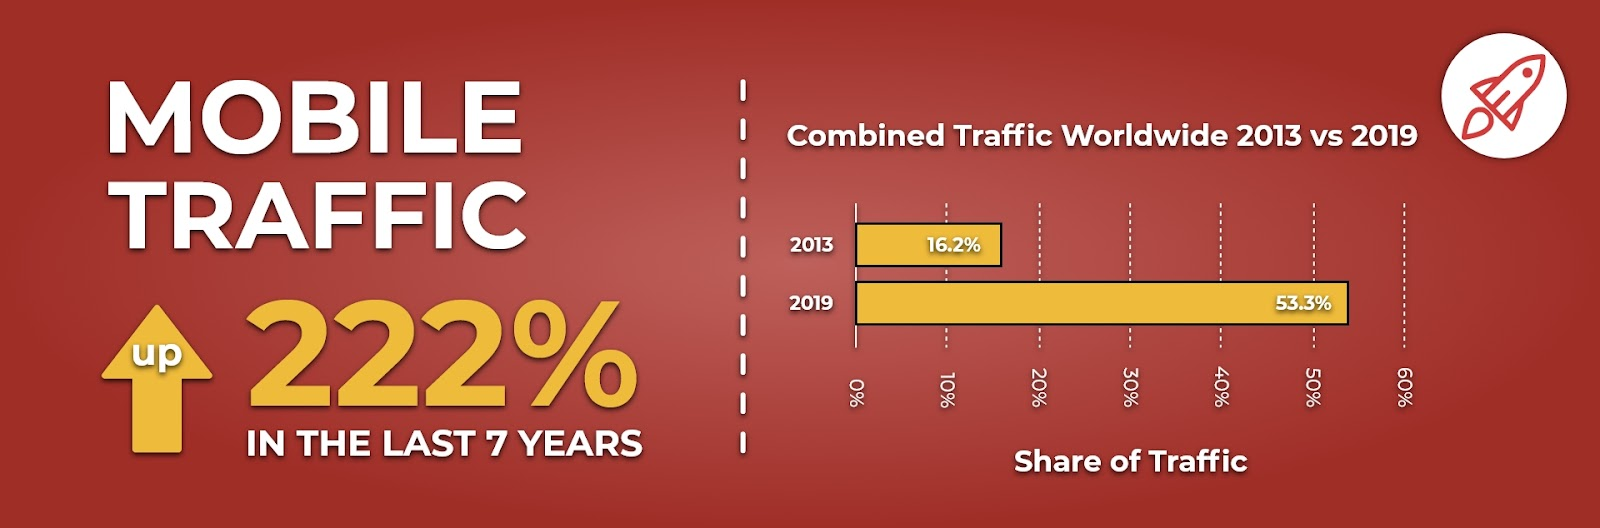 share of mobile traffic has increased by 222% in the last 7 years